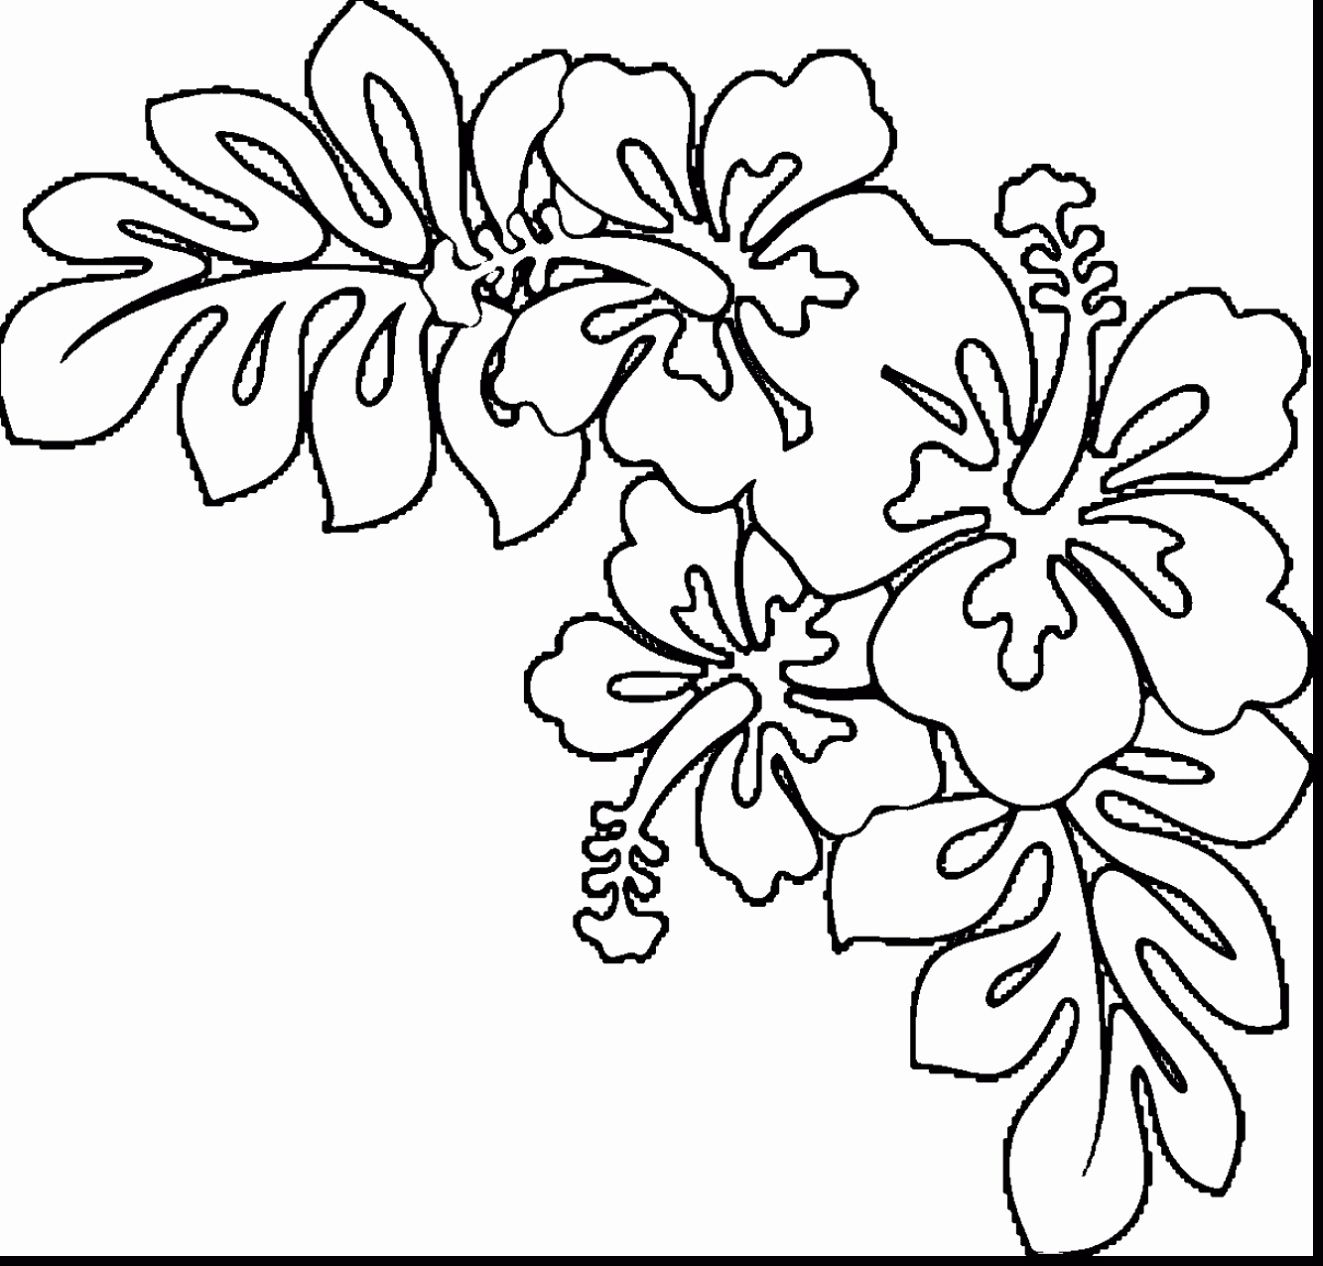 Hawaiian Flower Coloring Pages High Quality Coloring Pages Easy Flower Drawings Hawaiian Flower Drawing Hibiscus Drawing